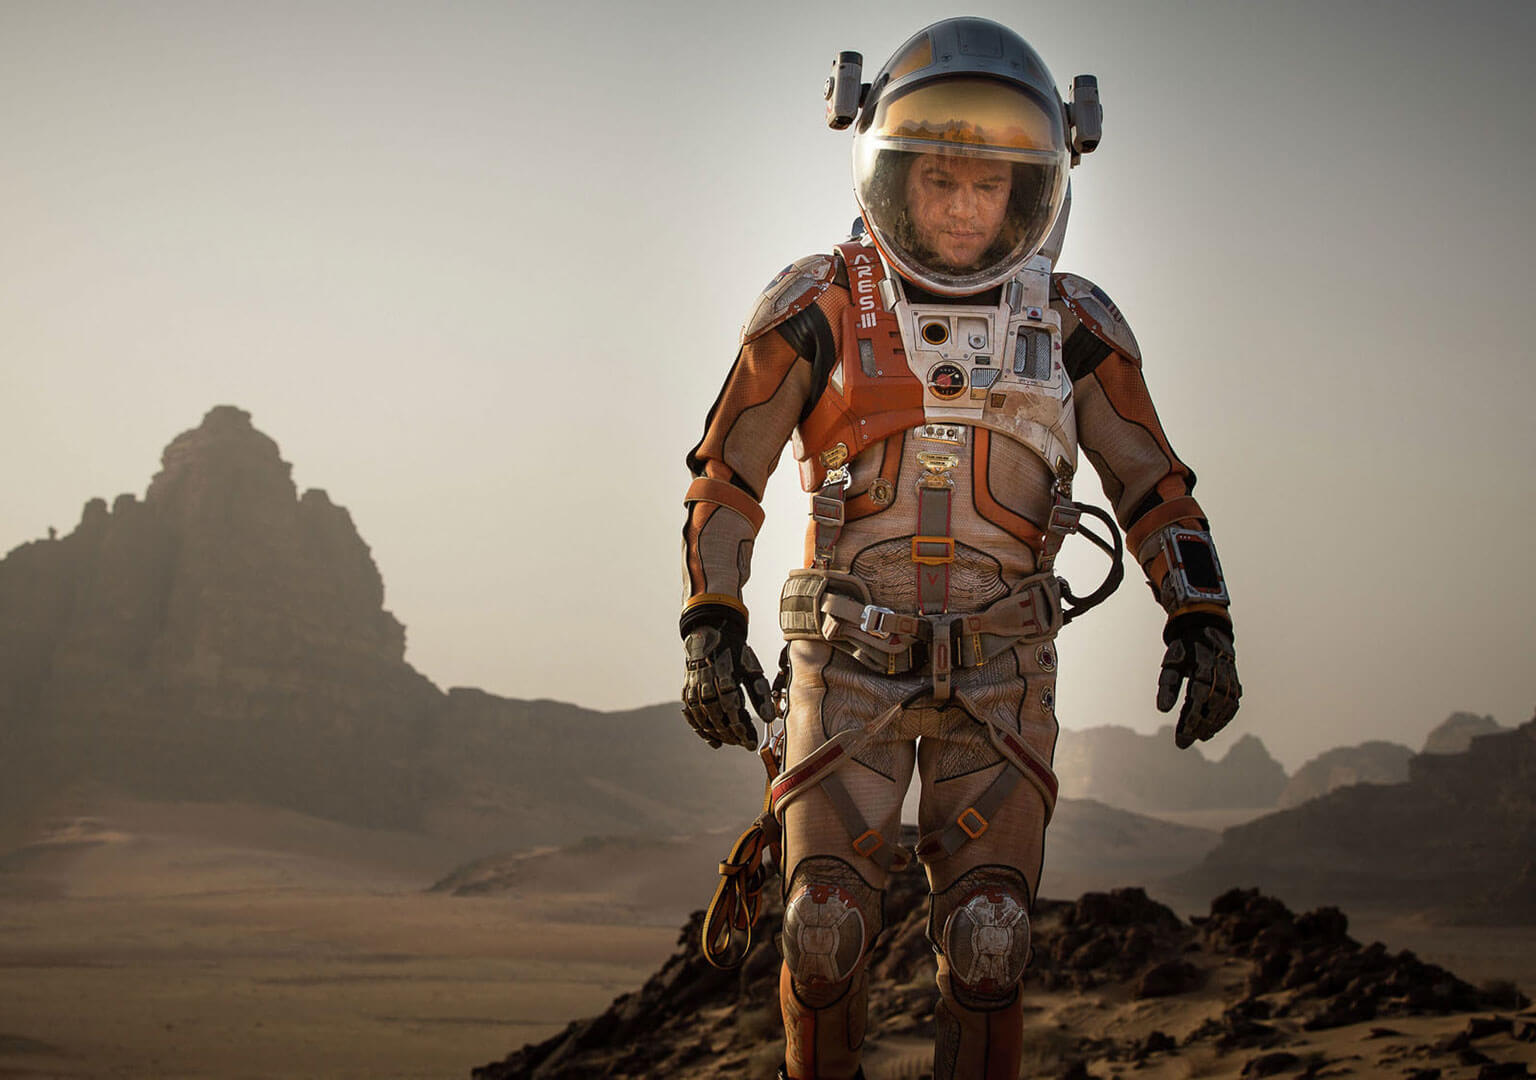 Video still from The Martian